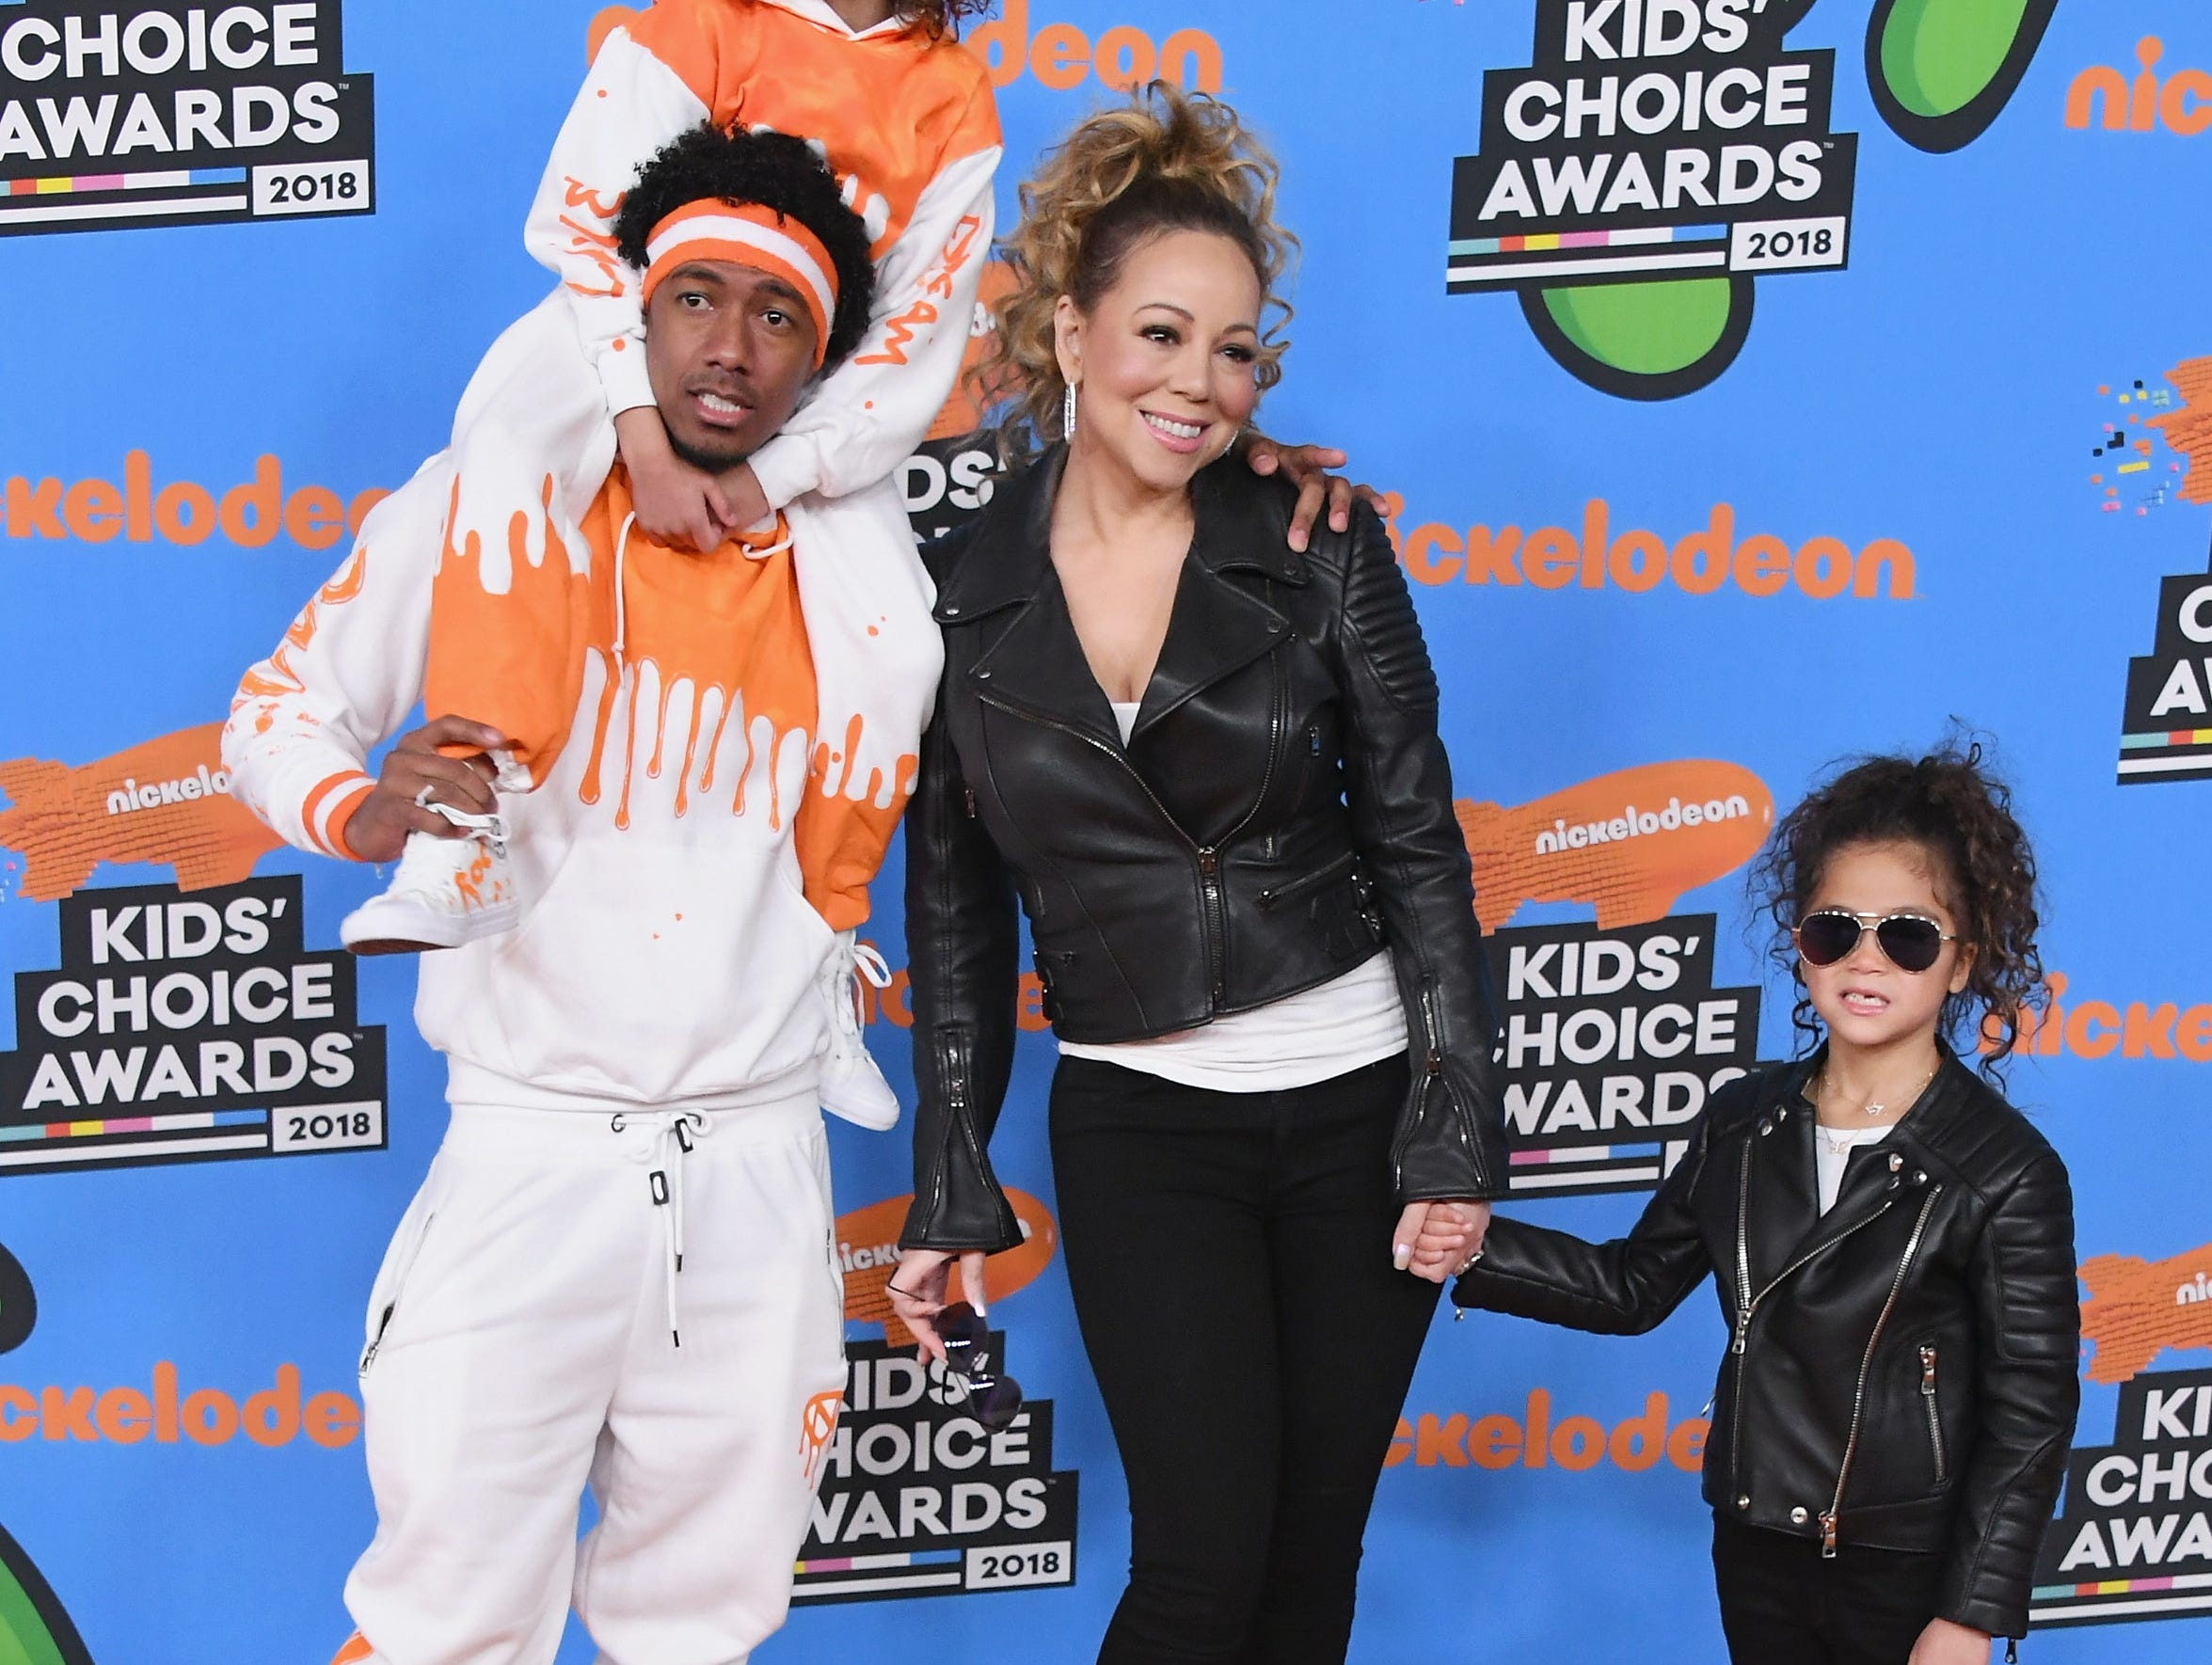 'Kids' Choice Awards': Celebrities with their offspring